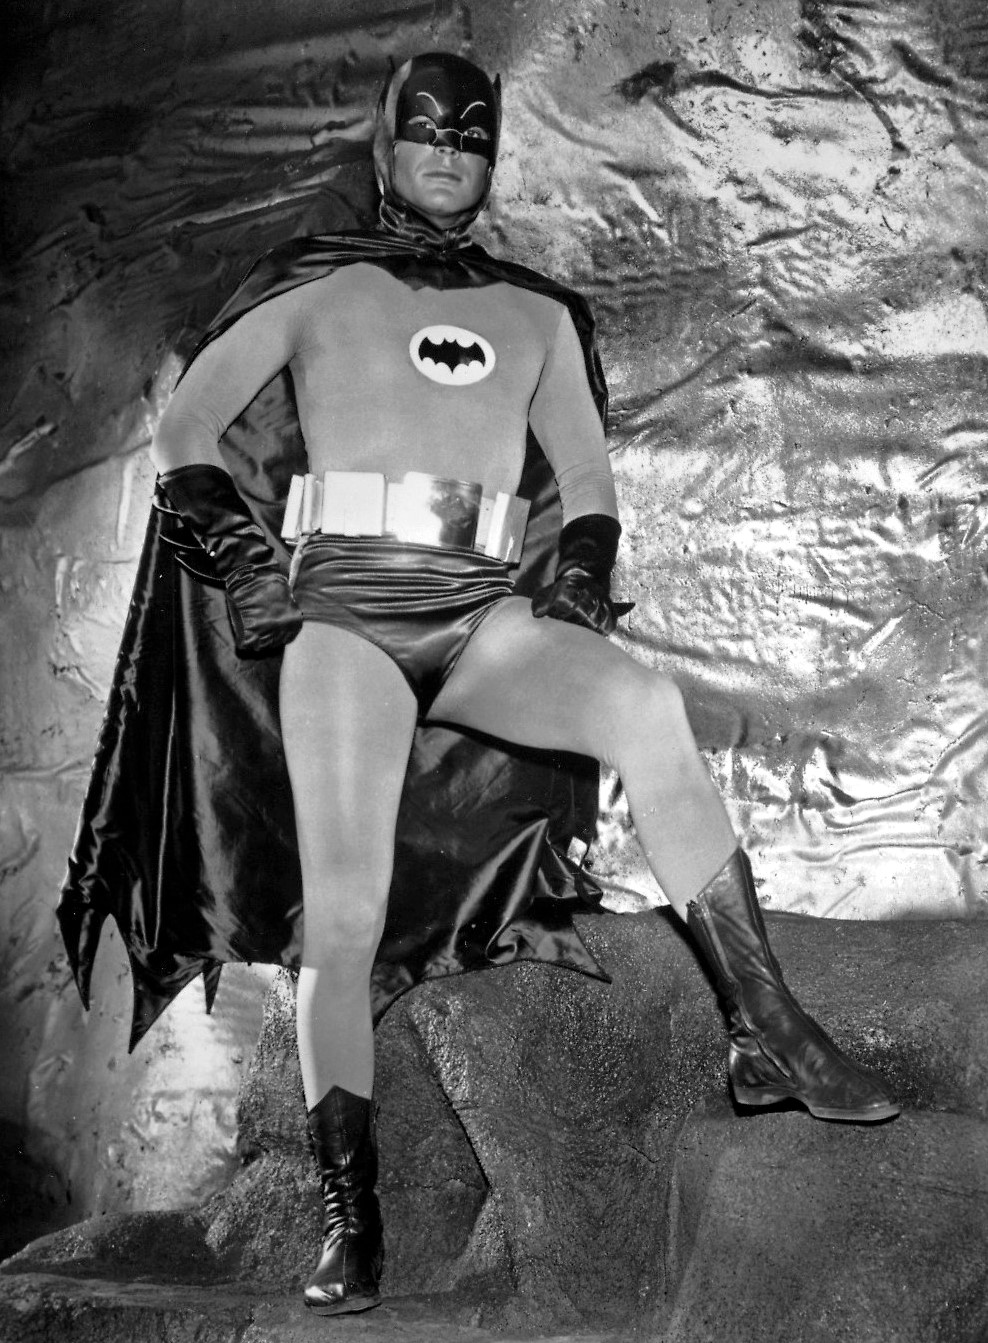 Adam West as Batman, showing some leg